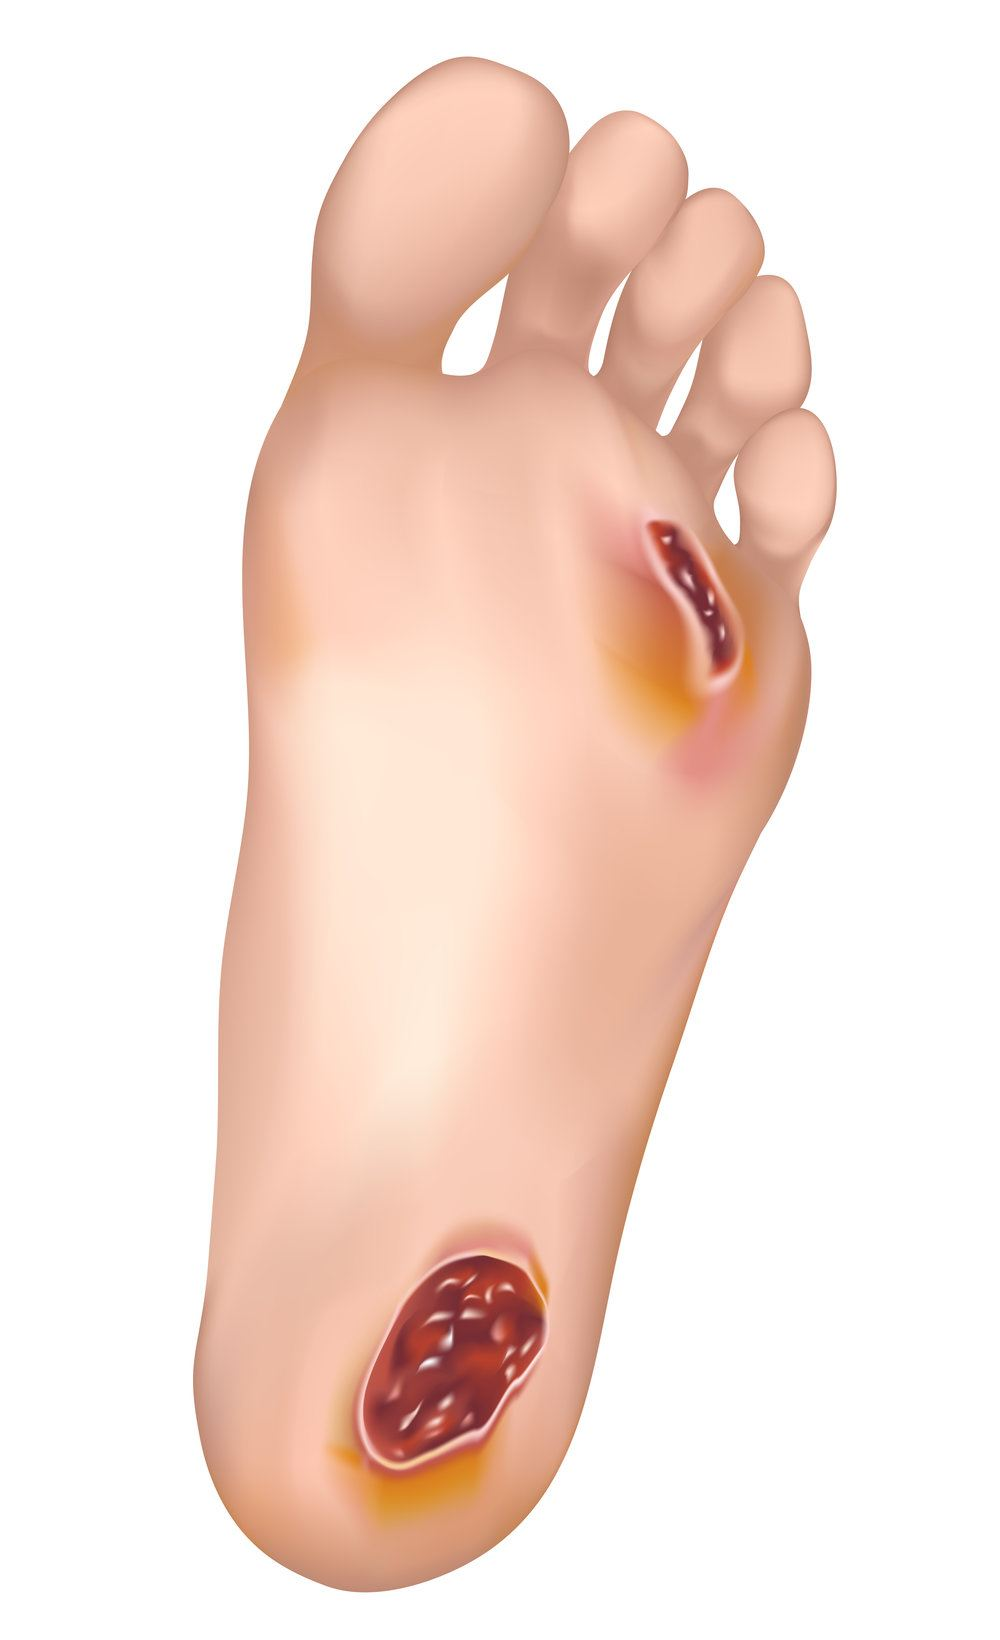 Image of advanced Wound Care, Socal Foot Ankle Doctors, Foot & Ankle Treatments